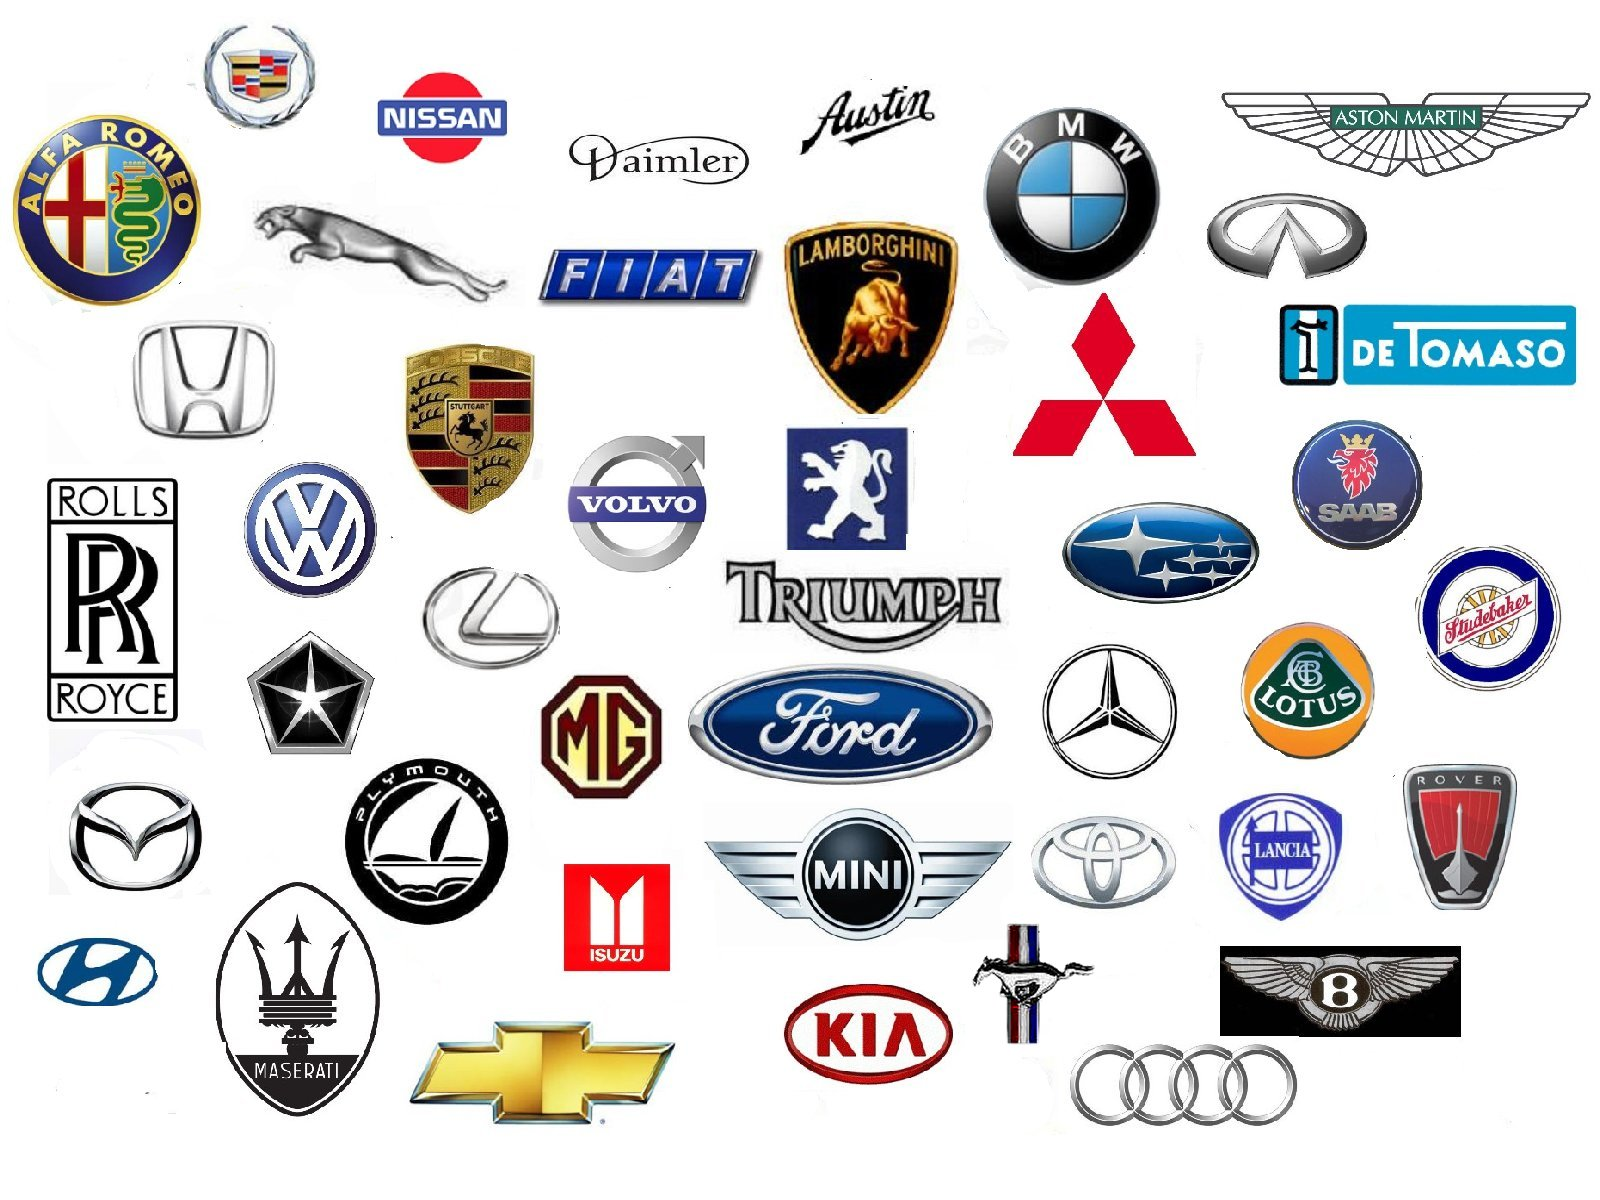 10 auto emblems icons images all car logos and names all car emblems logos with name and car. Black Bedroom Furniture Sets. Home Design Ideas